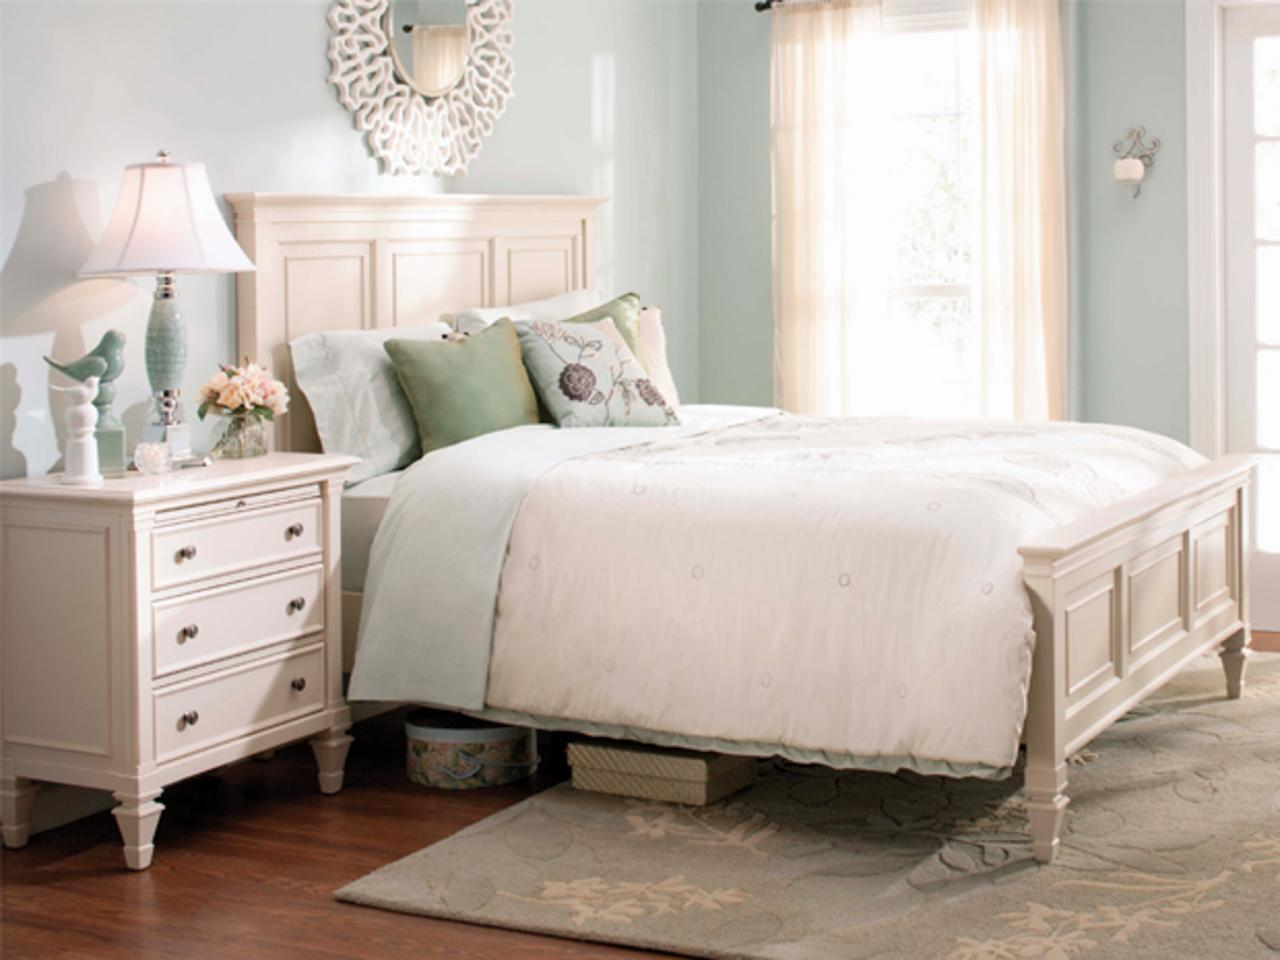 7 Quick Tips For Organizing Your Bedroom